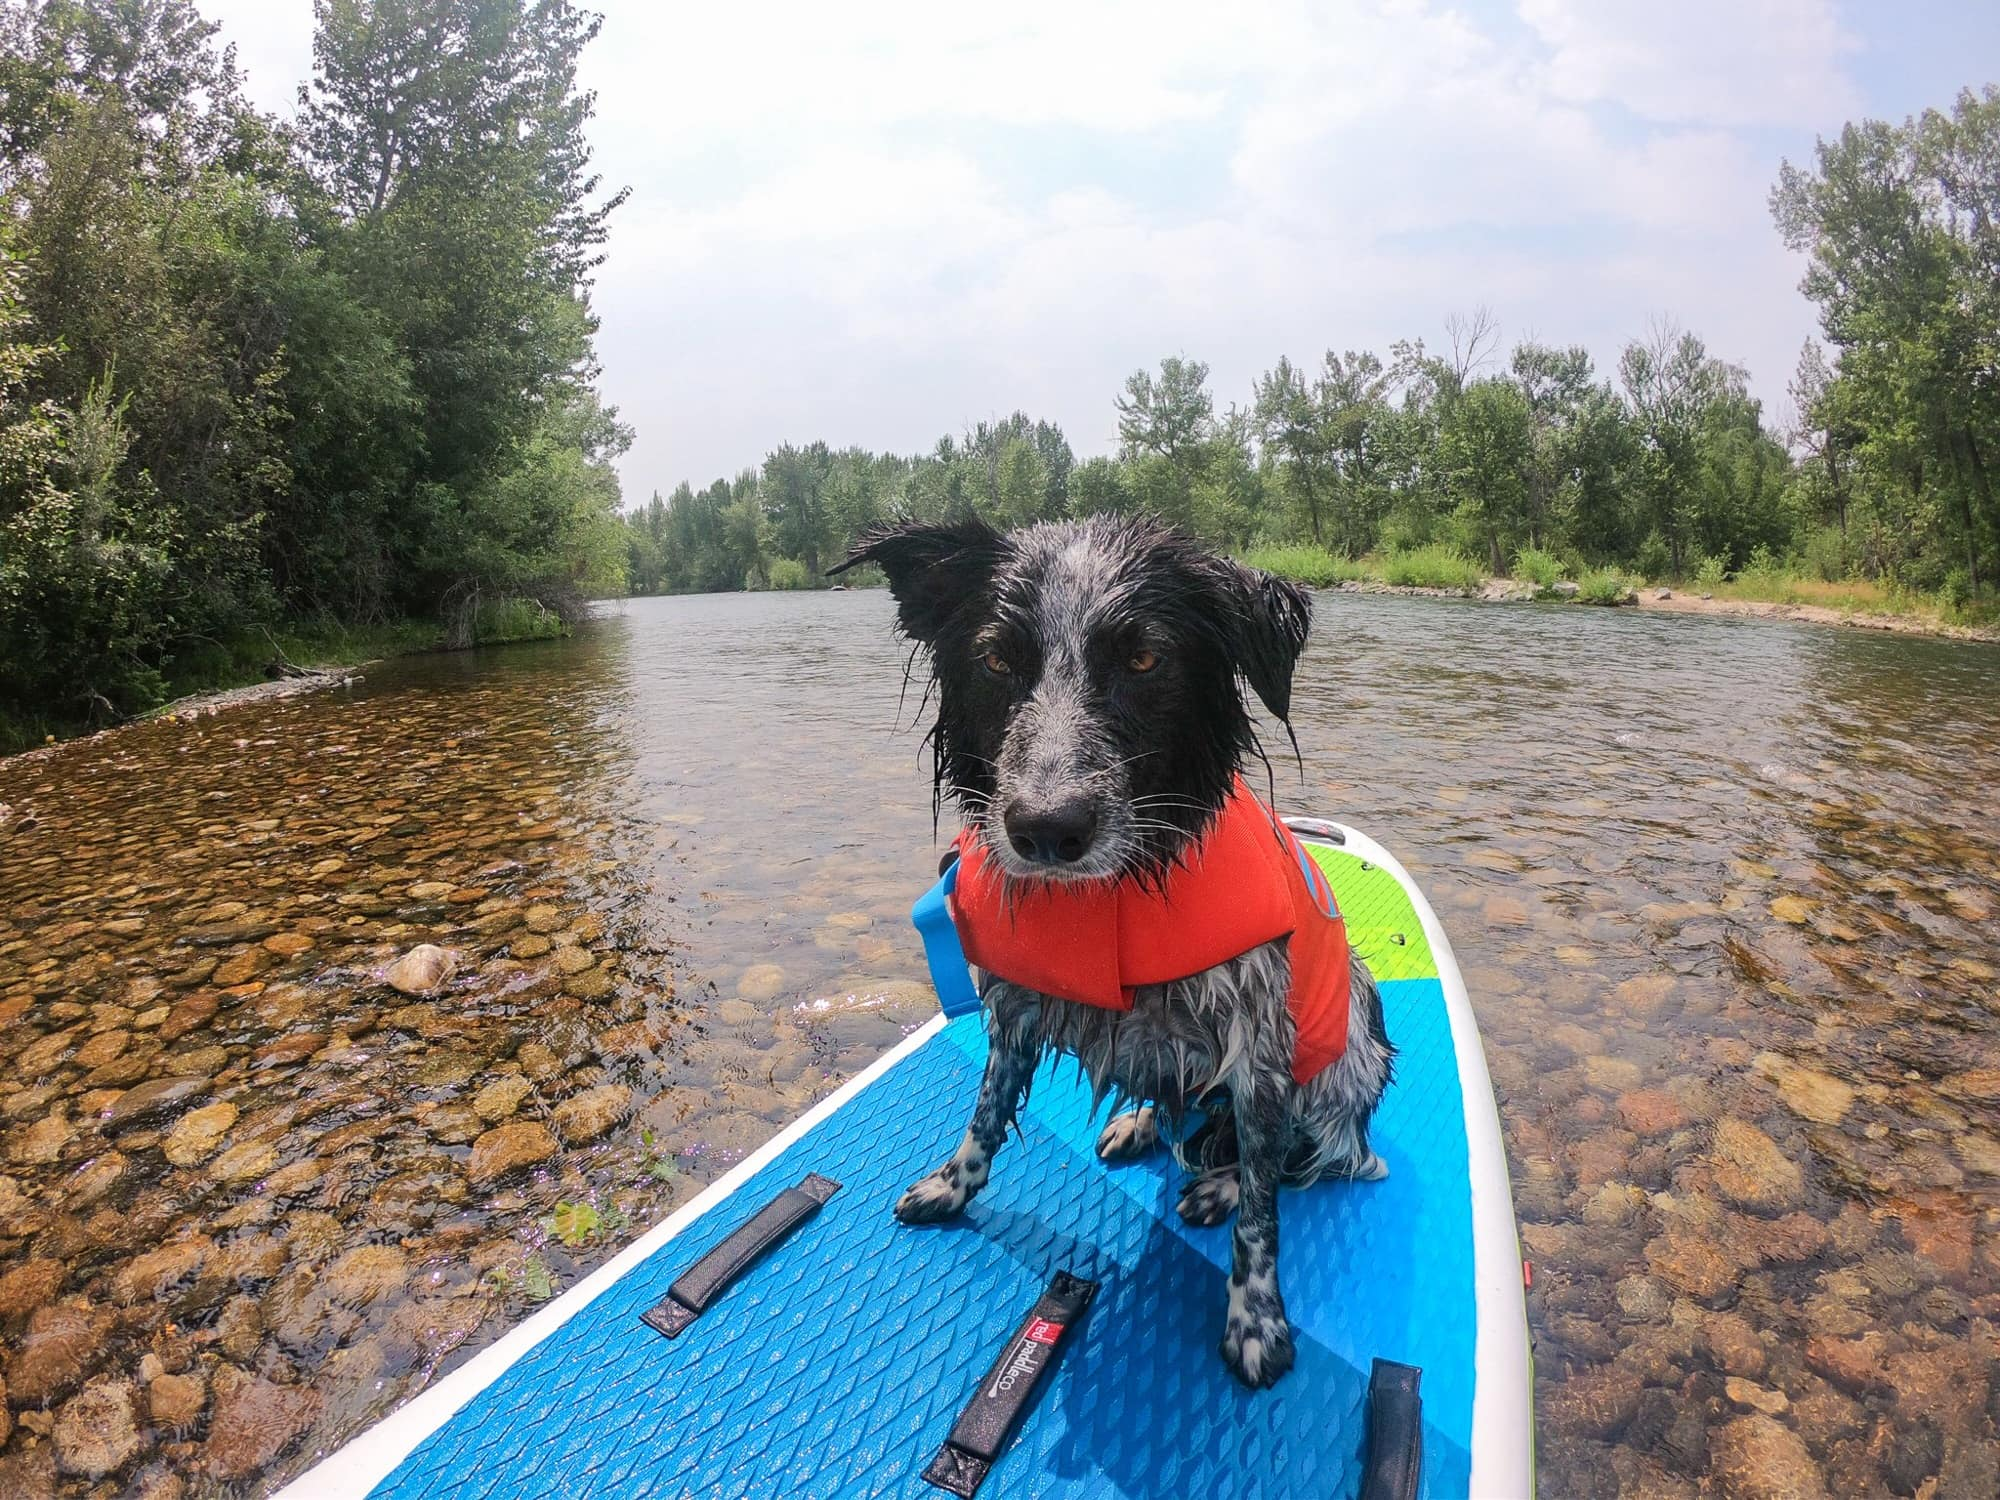 How to Keep Your Adventure Dog Cool in the Summer Heat